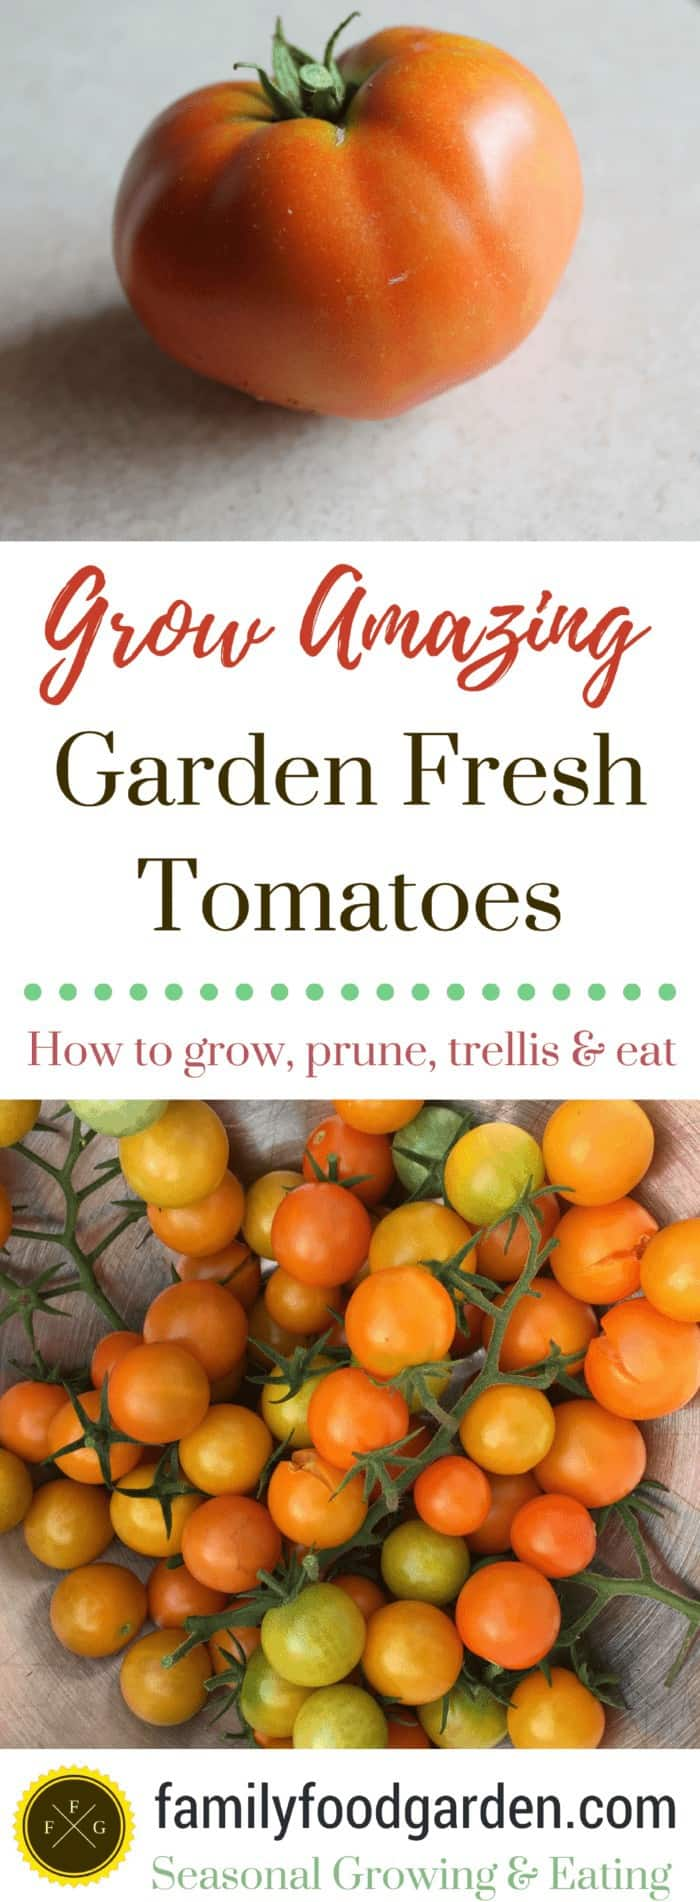 Growing Tomatoes ~ How to trellis, prune, grow & eat tomatoes!